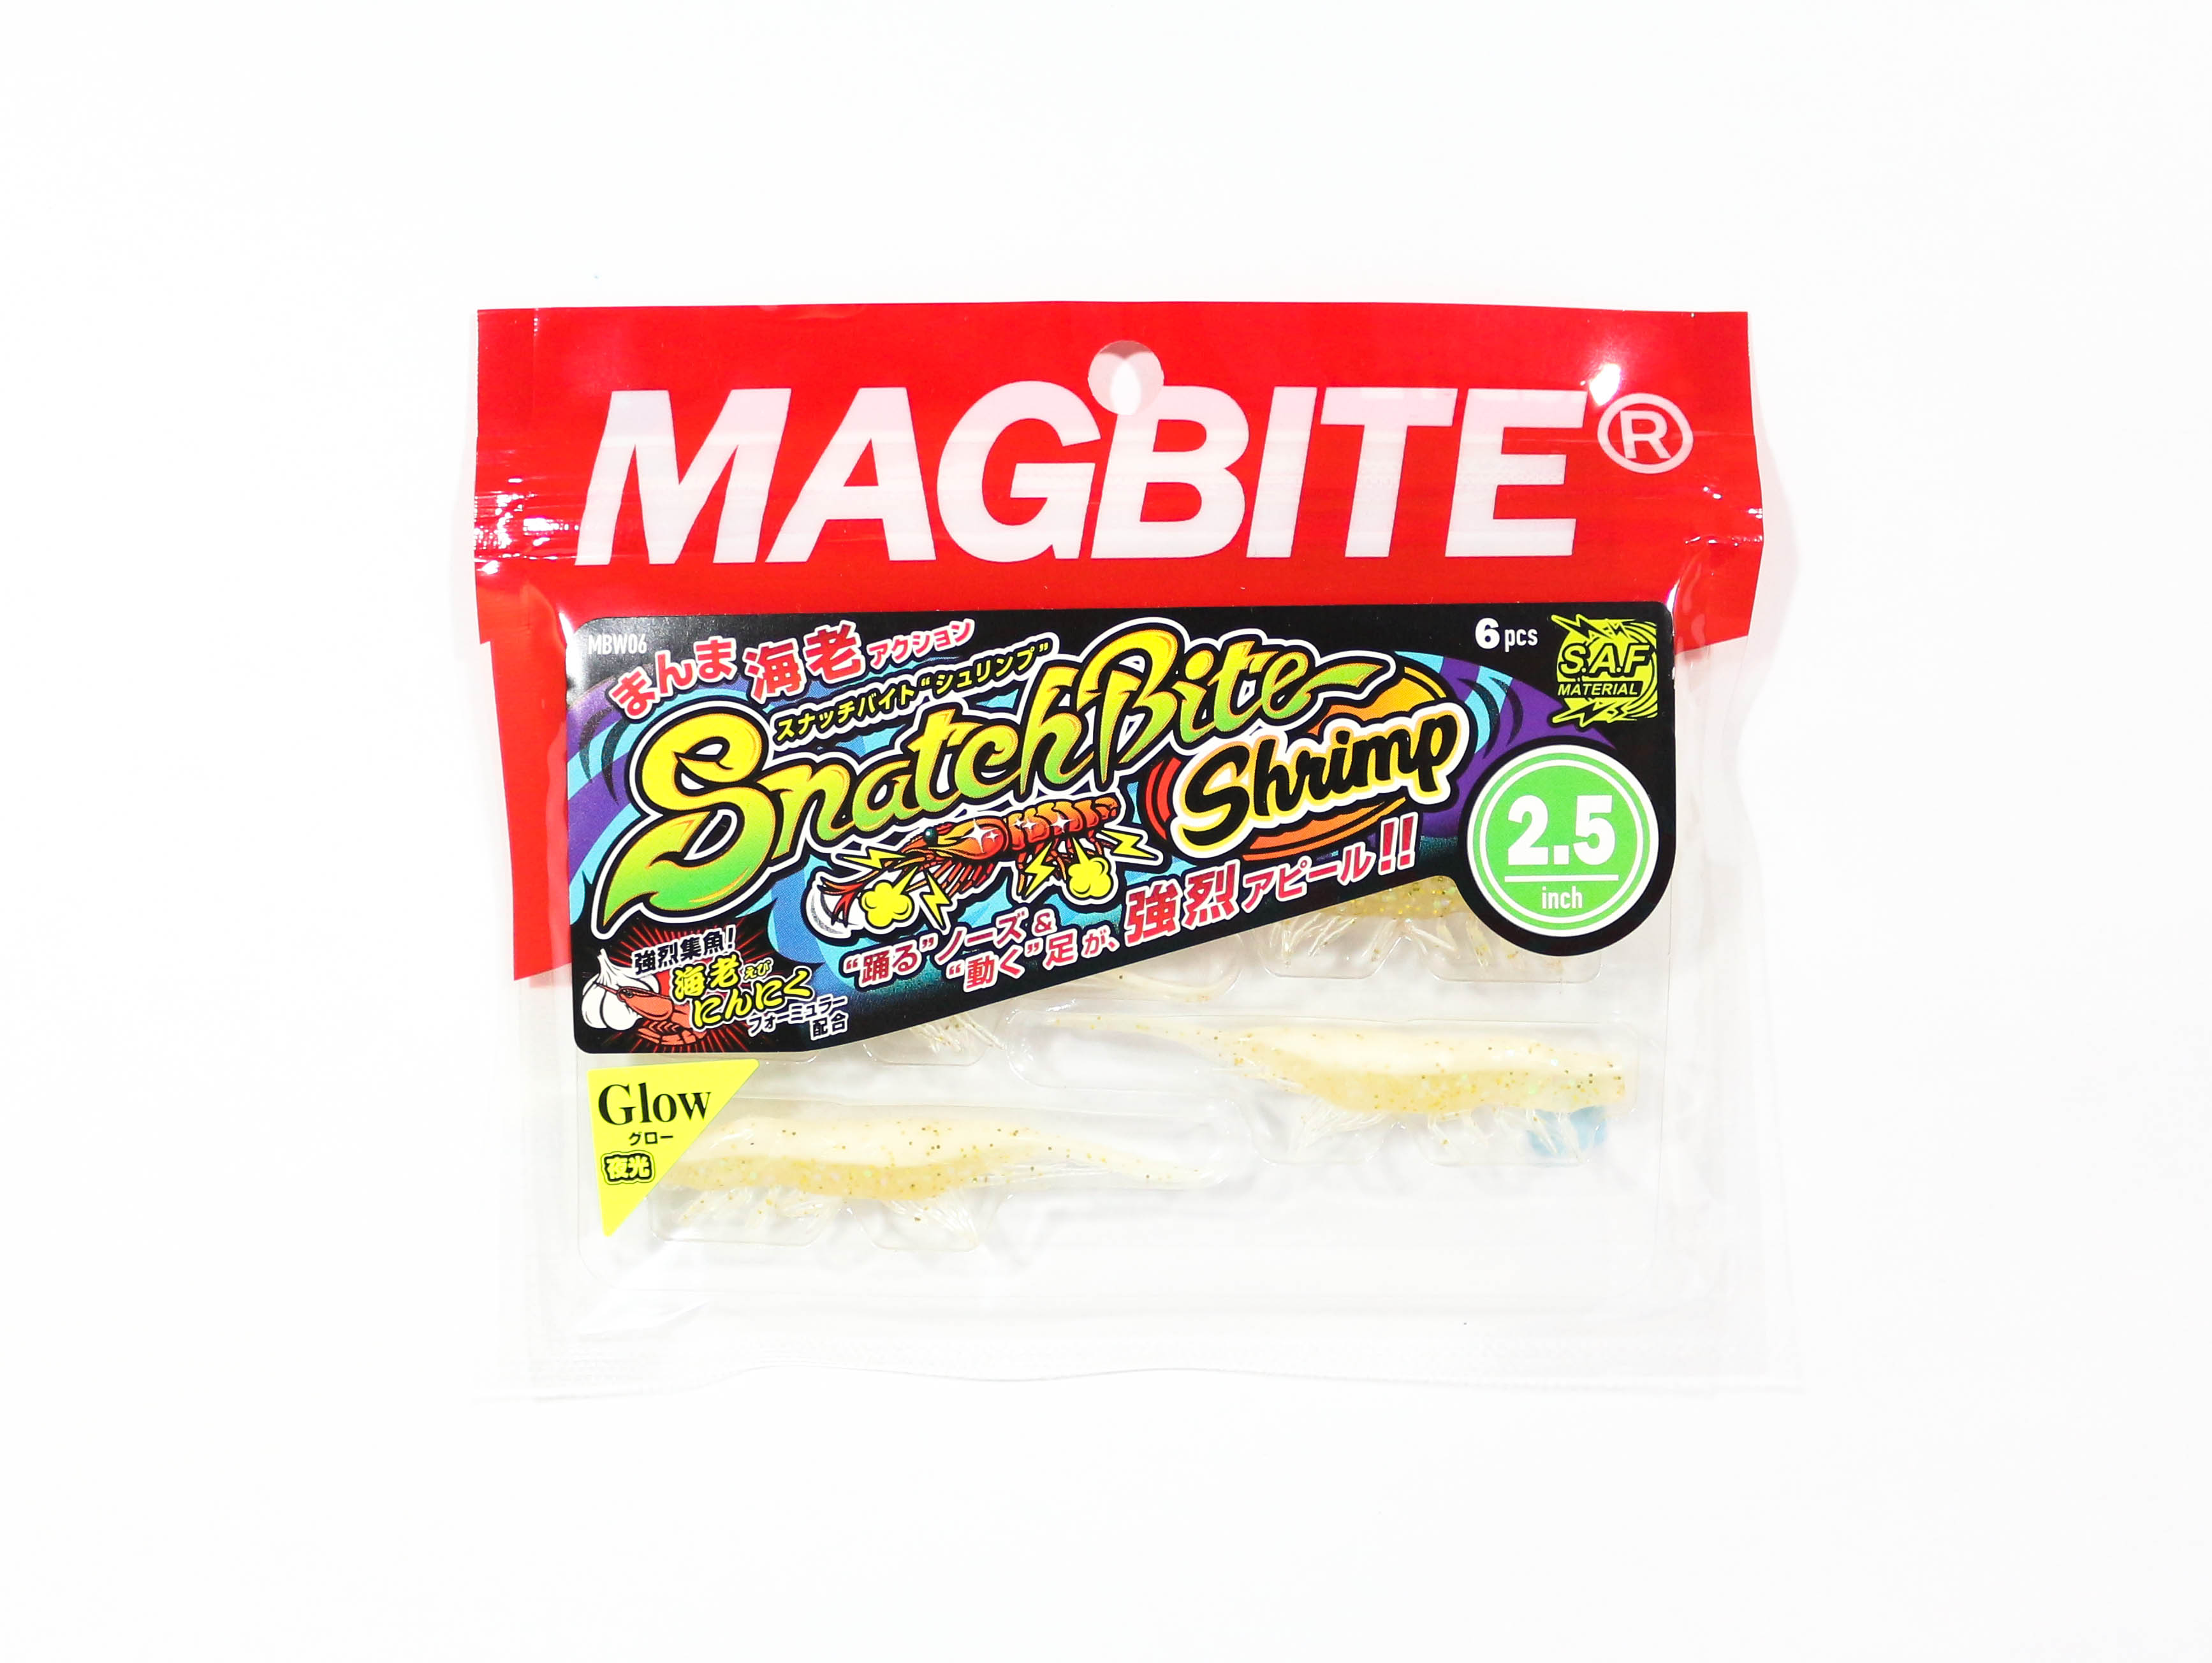 Harimitsu Mag Bite Snatch Shrimp 2.5 Inch 6 per pack 03 (6515)